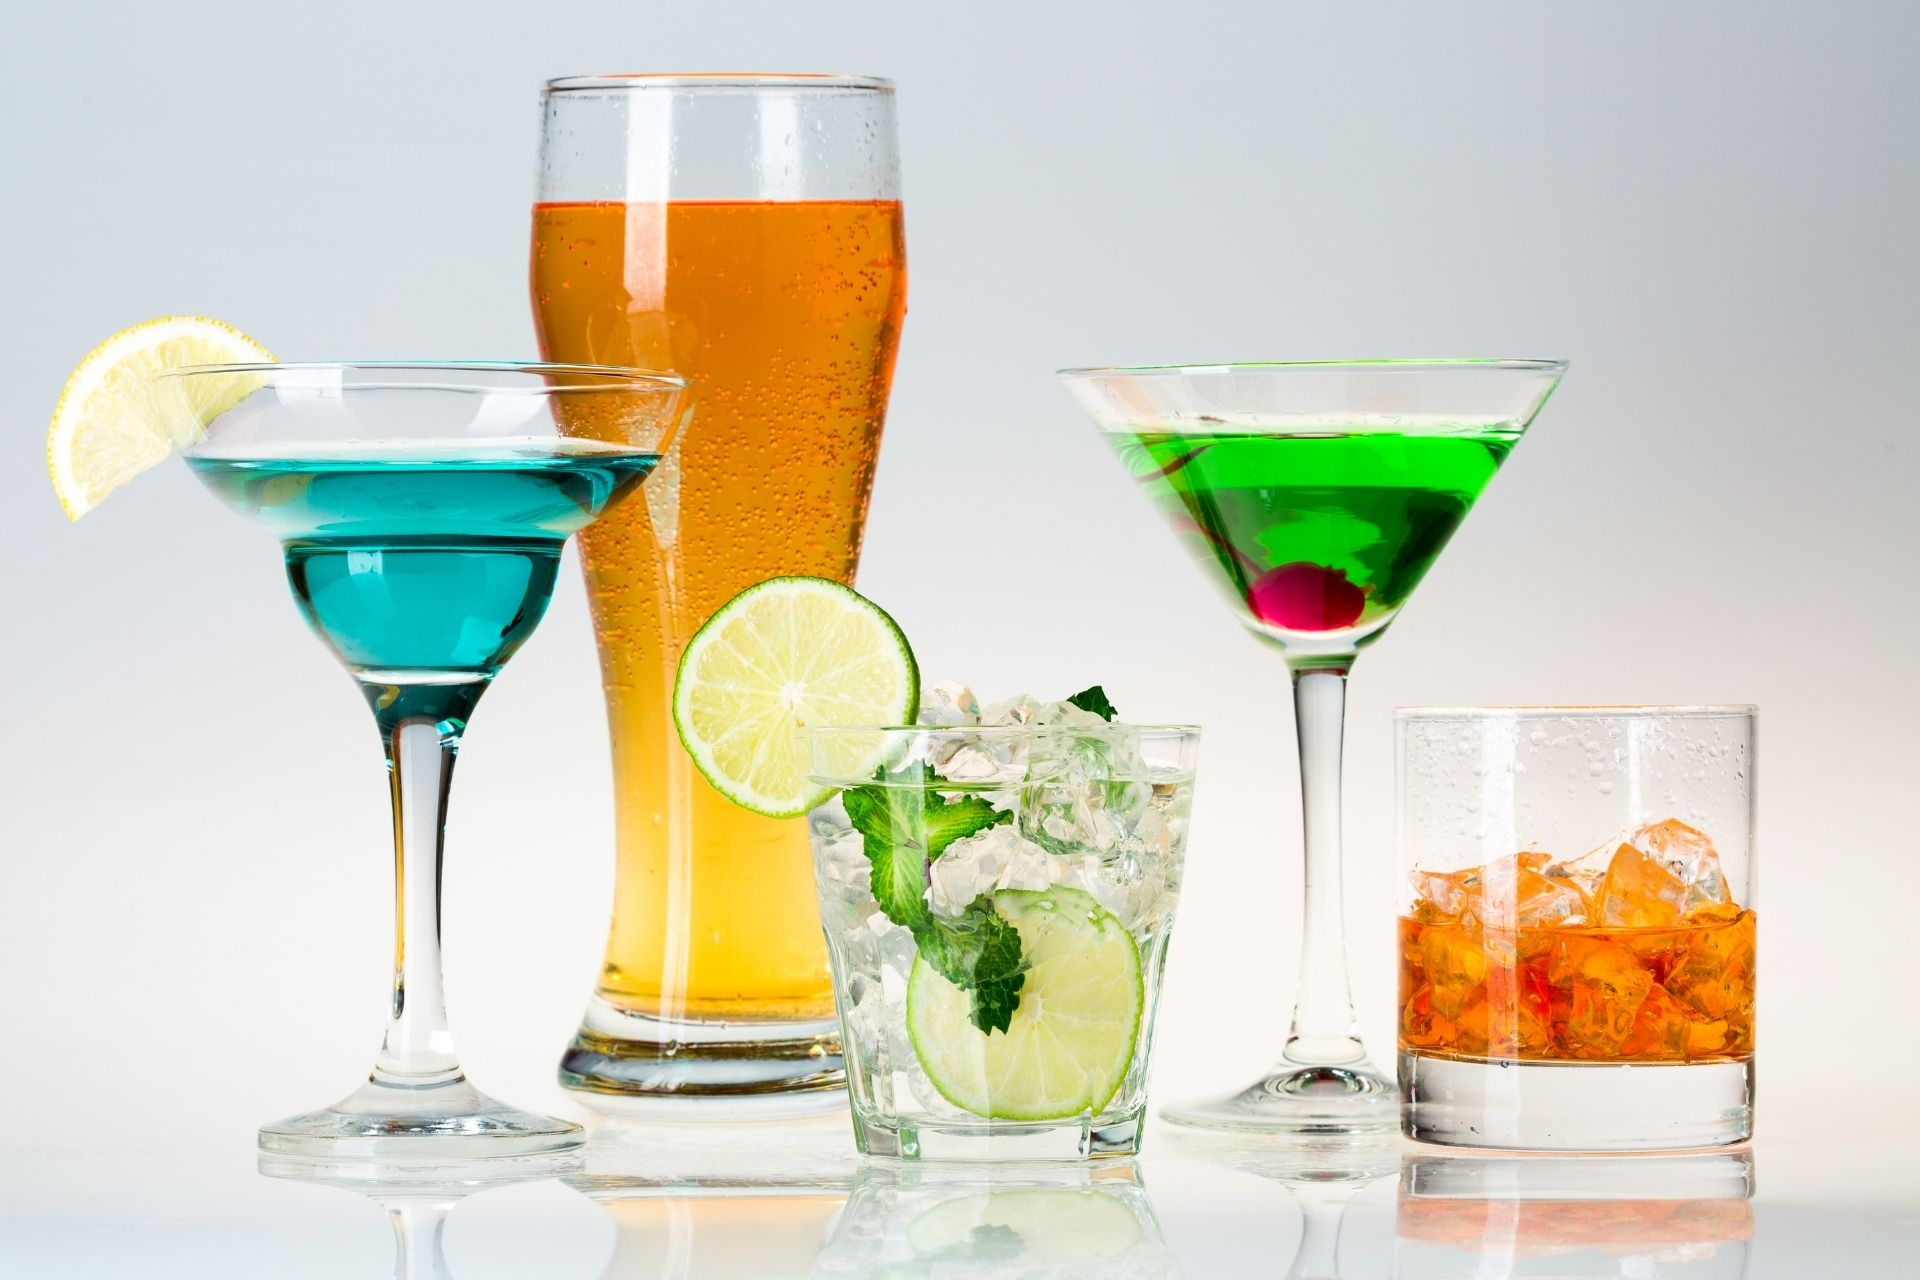 What Is The Easiest Alcohol To Make?